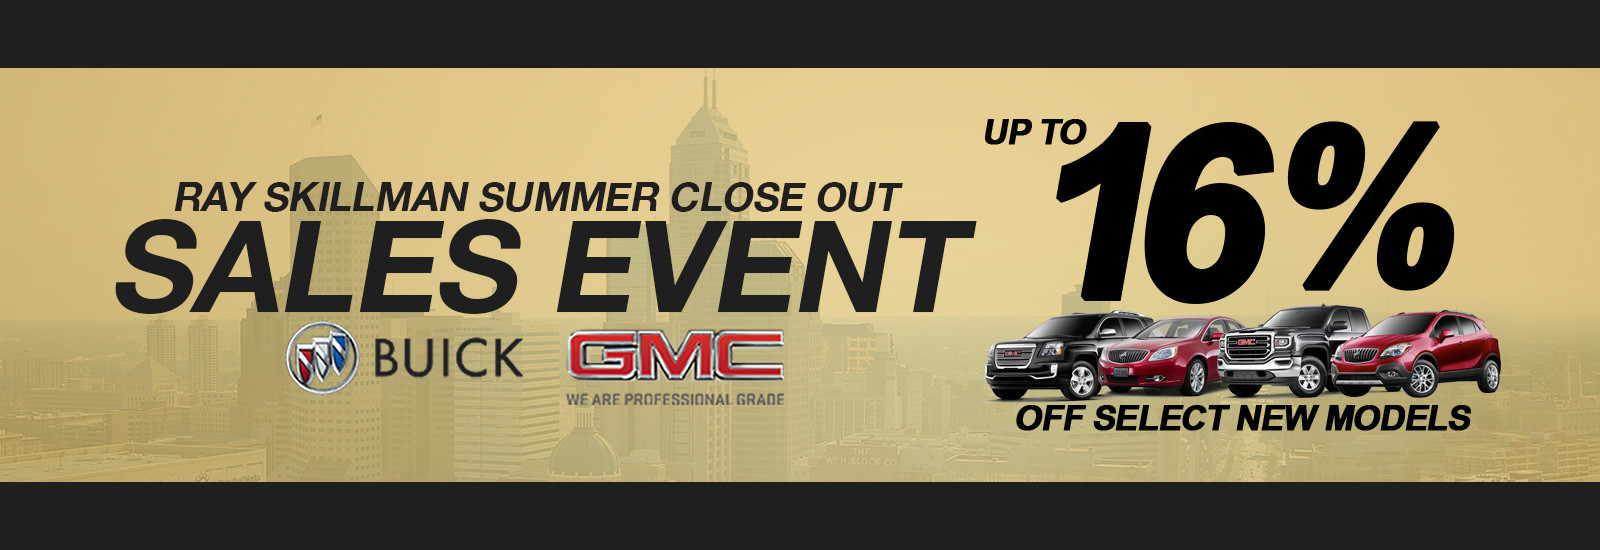 Summer Sales Event Up to 16% off select new models